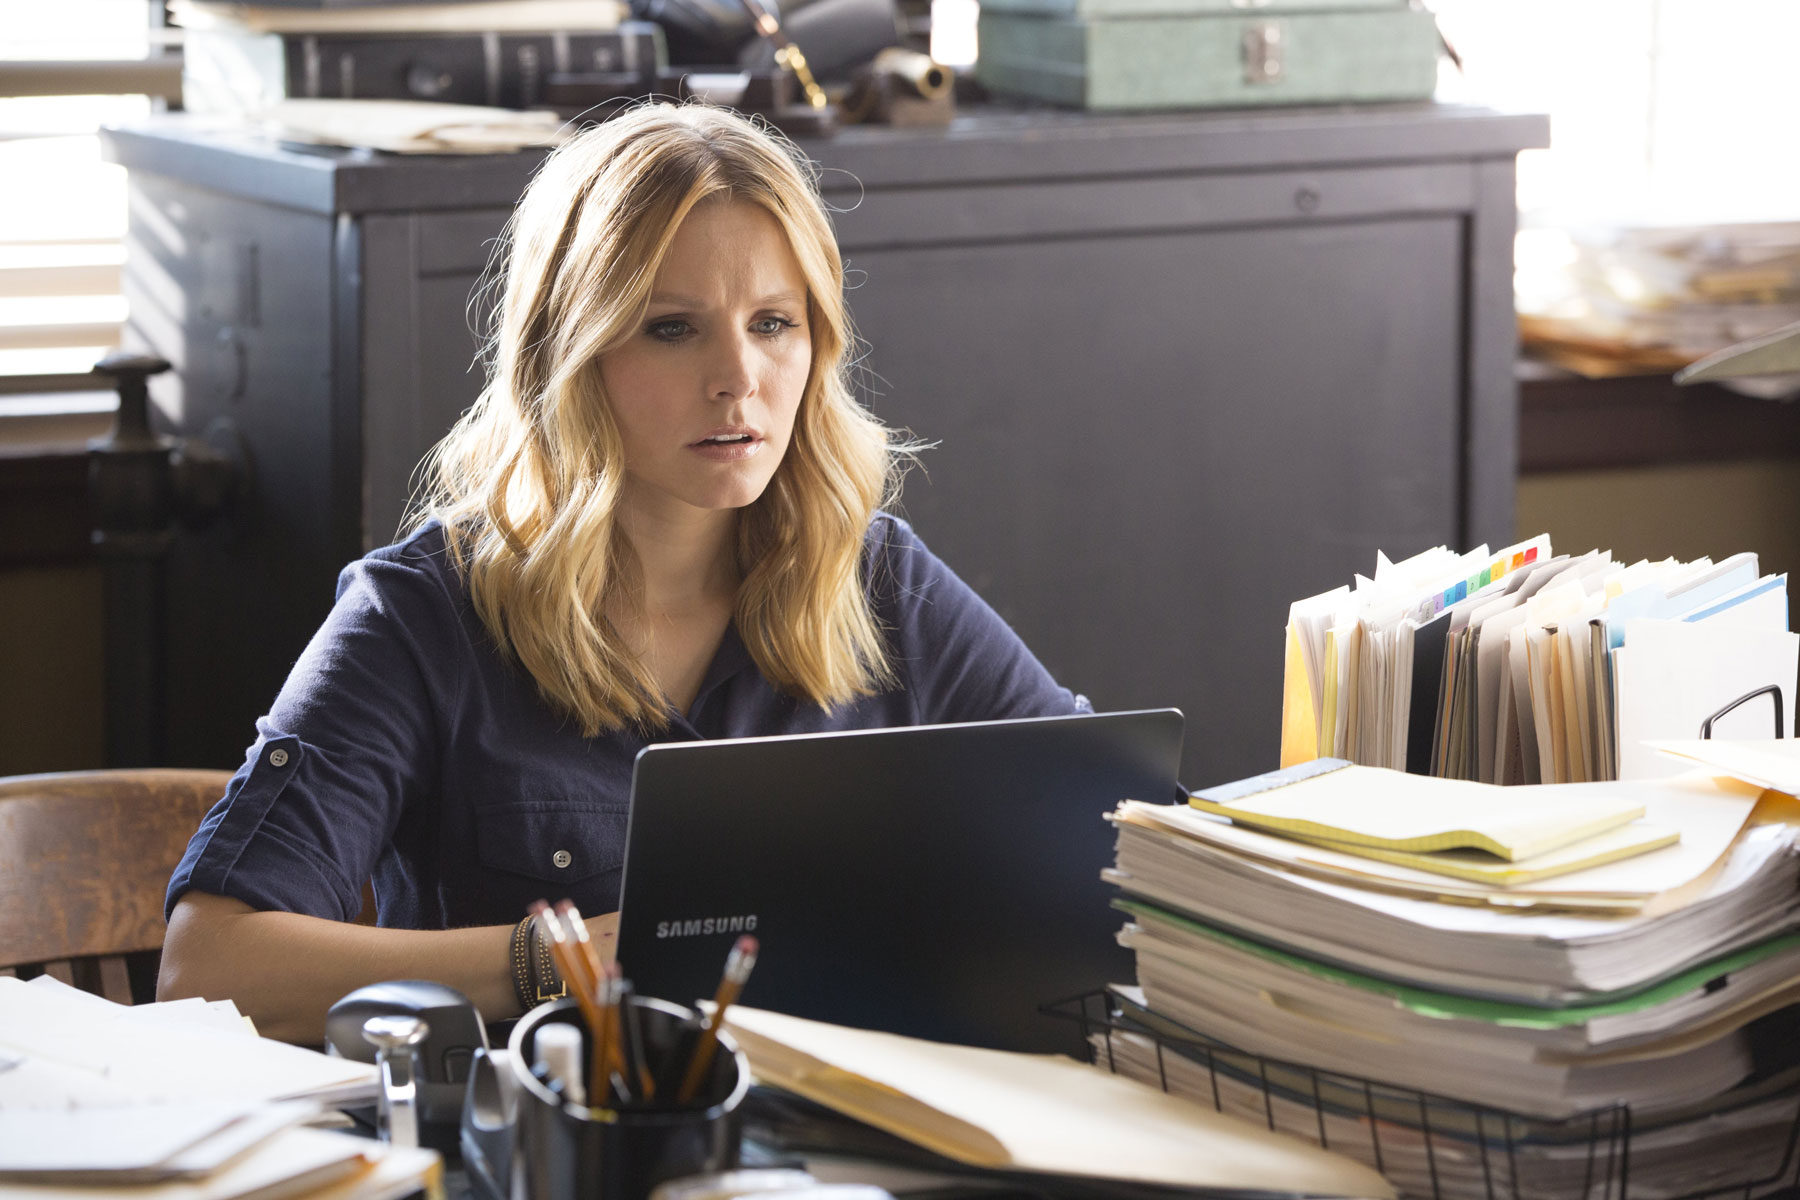 Life on 'Mars': What to Know Before Seeing the 'Veronica Mars' Movie